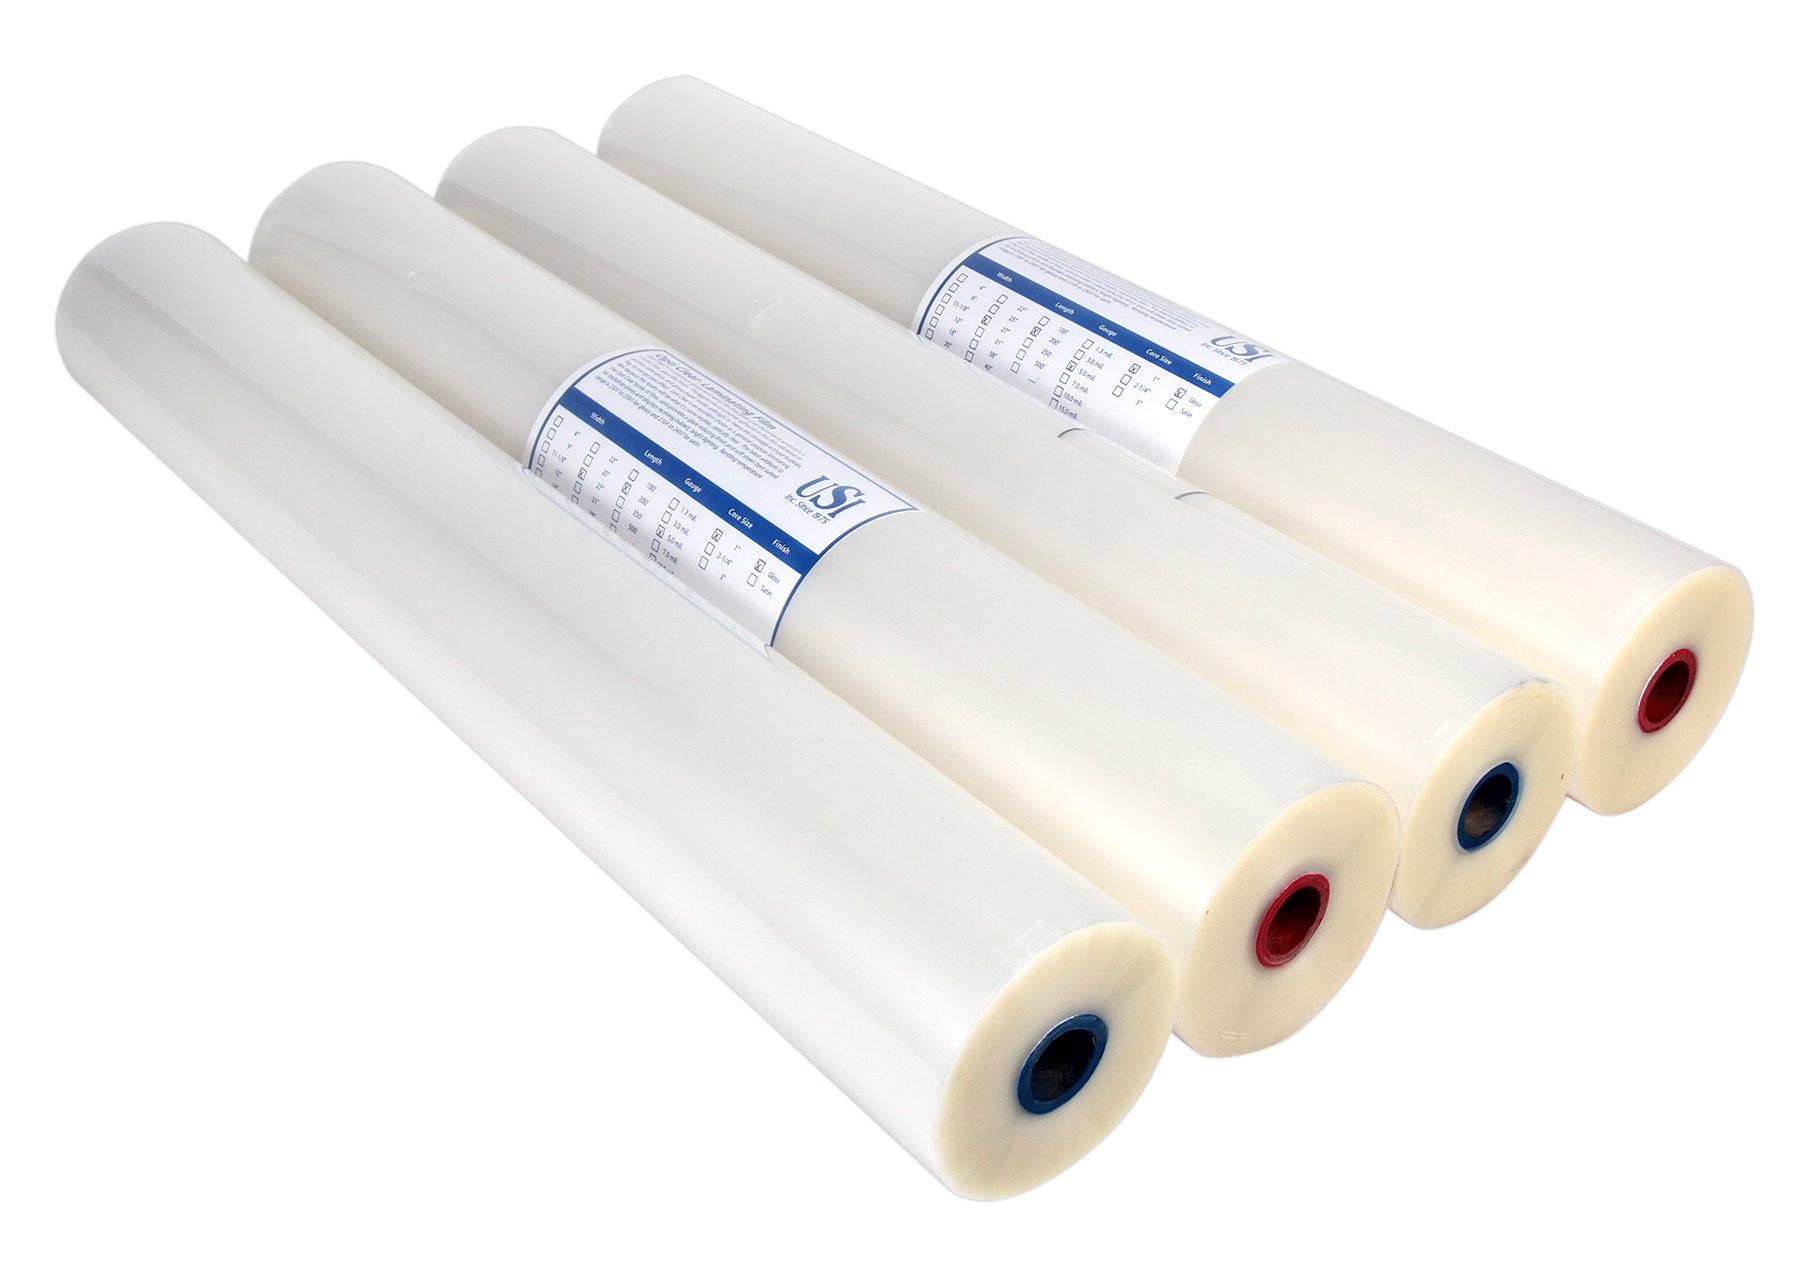 USI Opti Clear Premium Thermal Low-Melt EVA Roll Laminating Film, 1 Inch Core, 3 Mil, 27 Inches x 250 Feet, Clear Gloss, 4 Rolls by USI